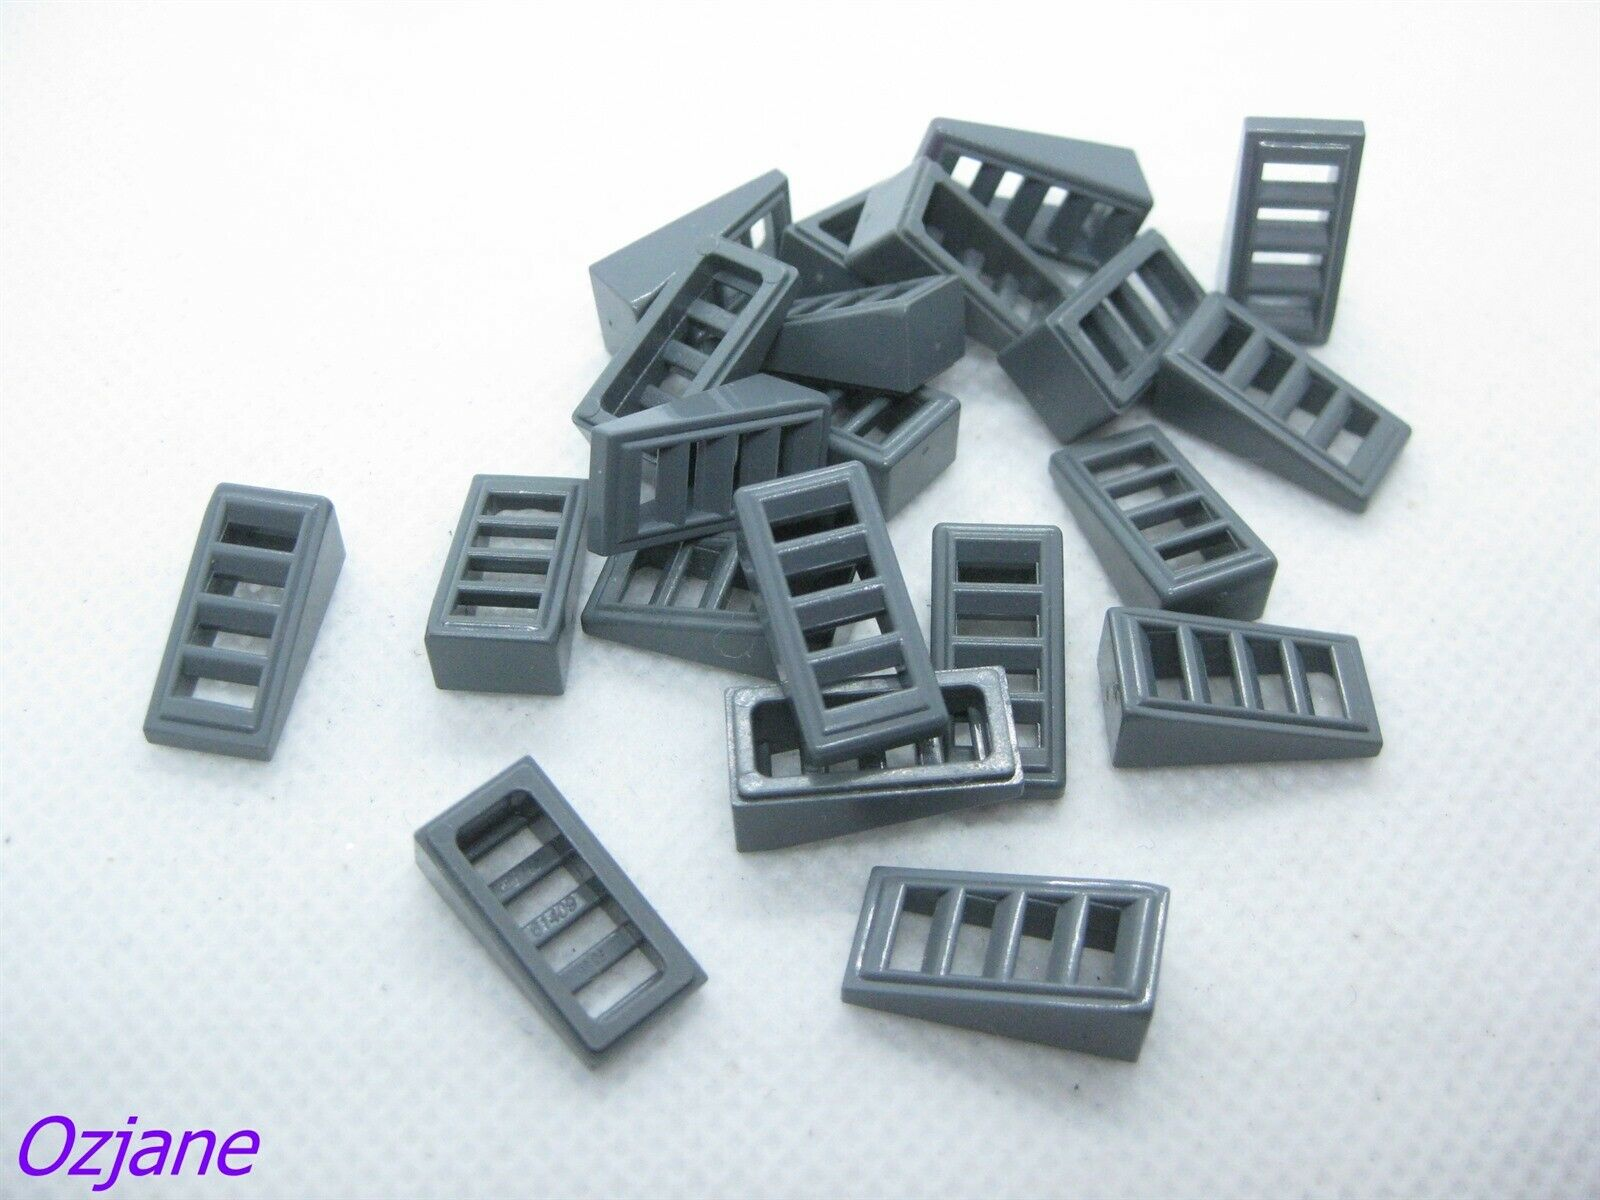 X 4 black Slope 18 2 x 1 x 2//3 with 4 Slots Part 61409 LEGO